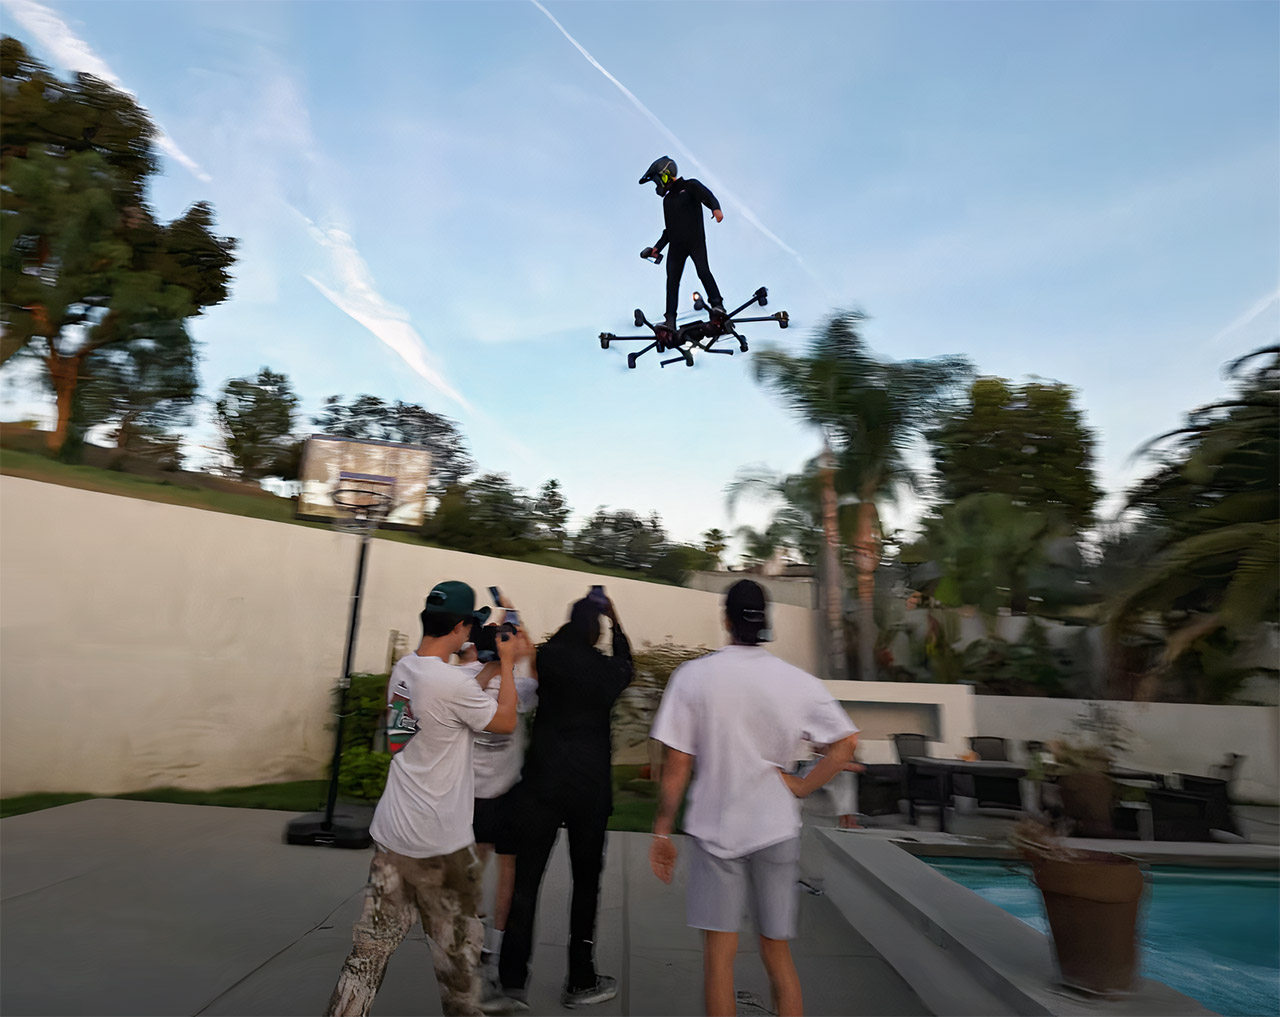 Custom Hoverboard Drone